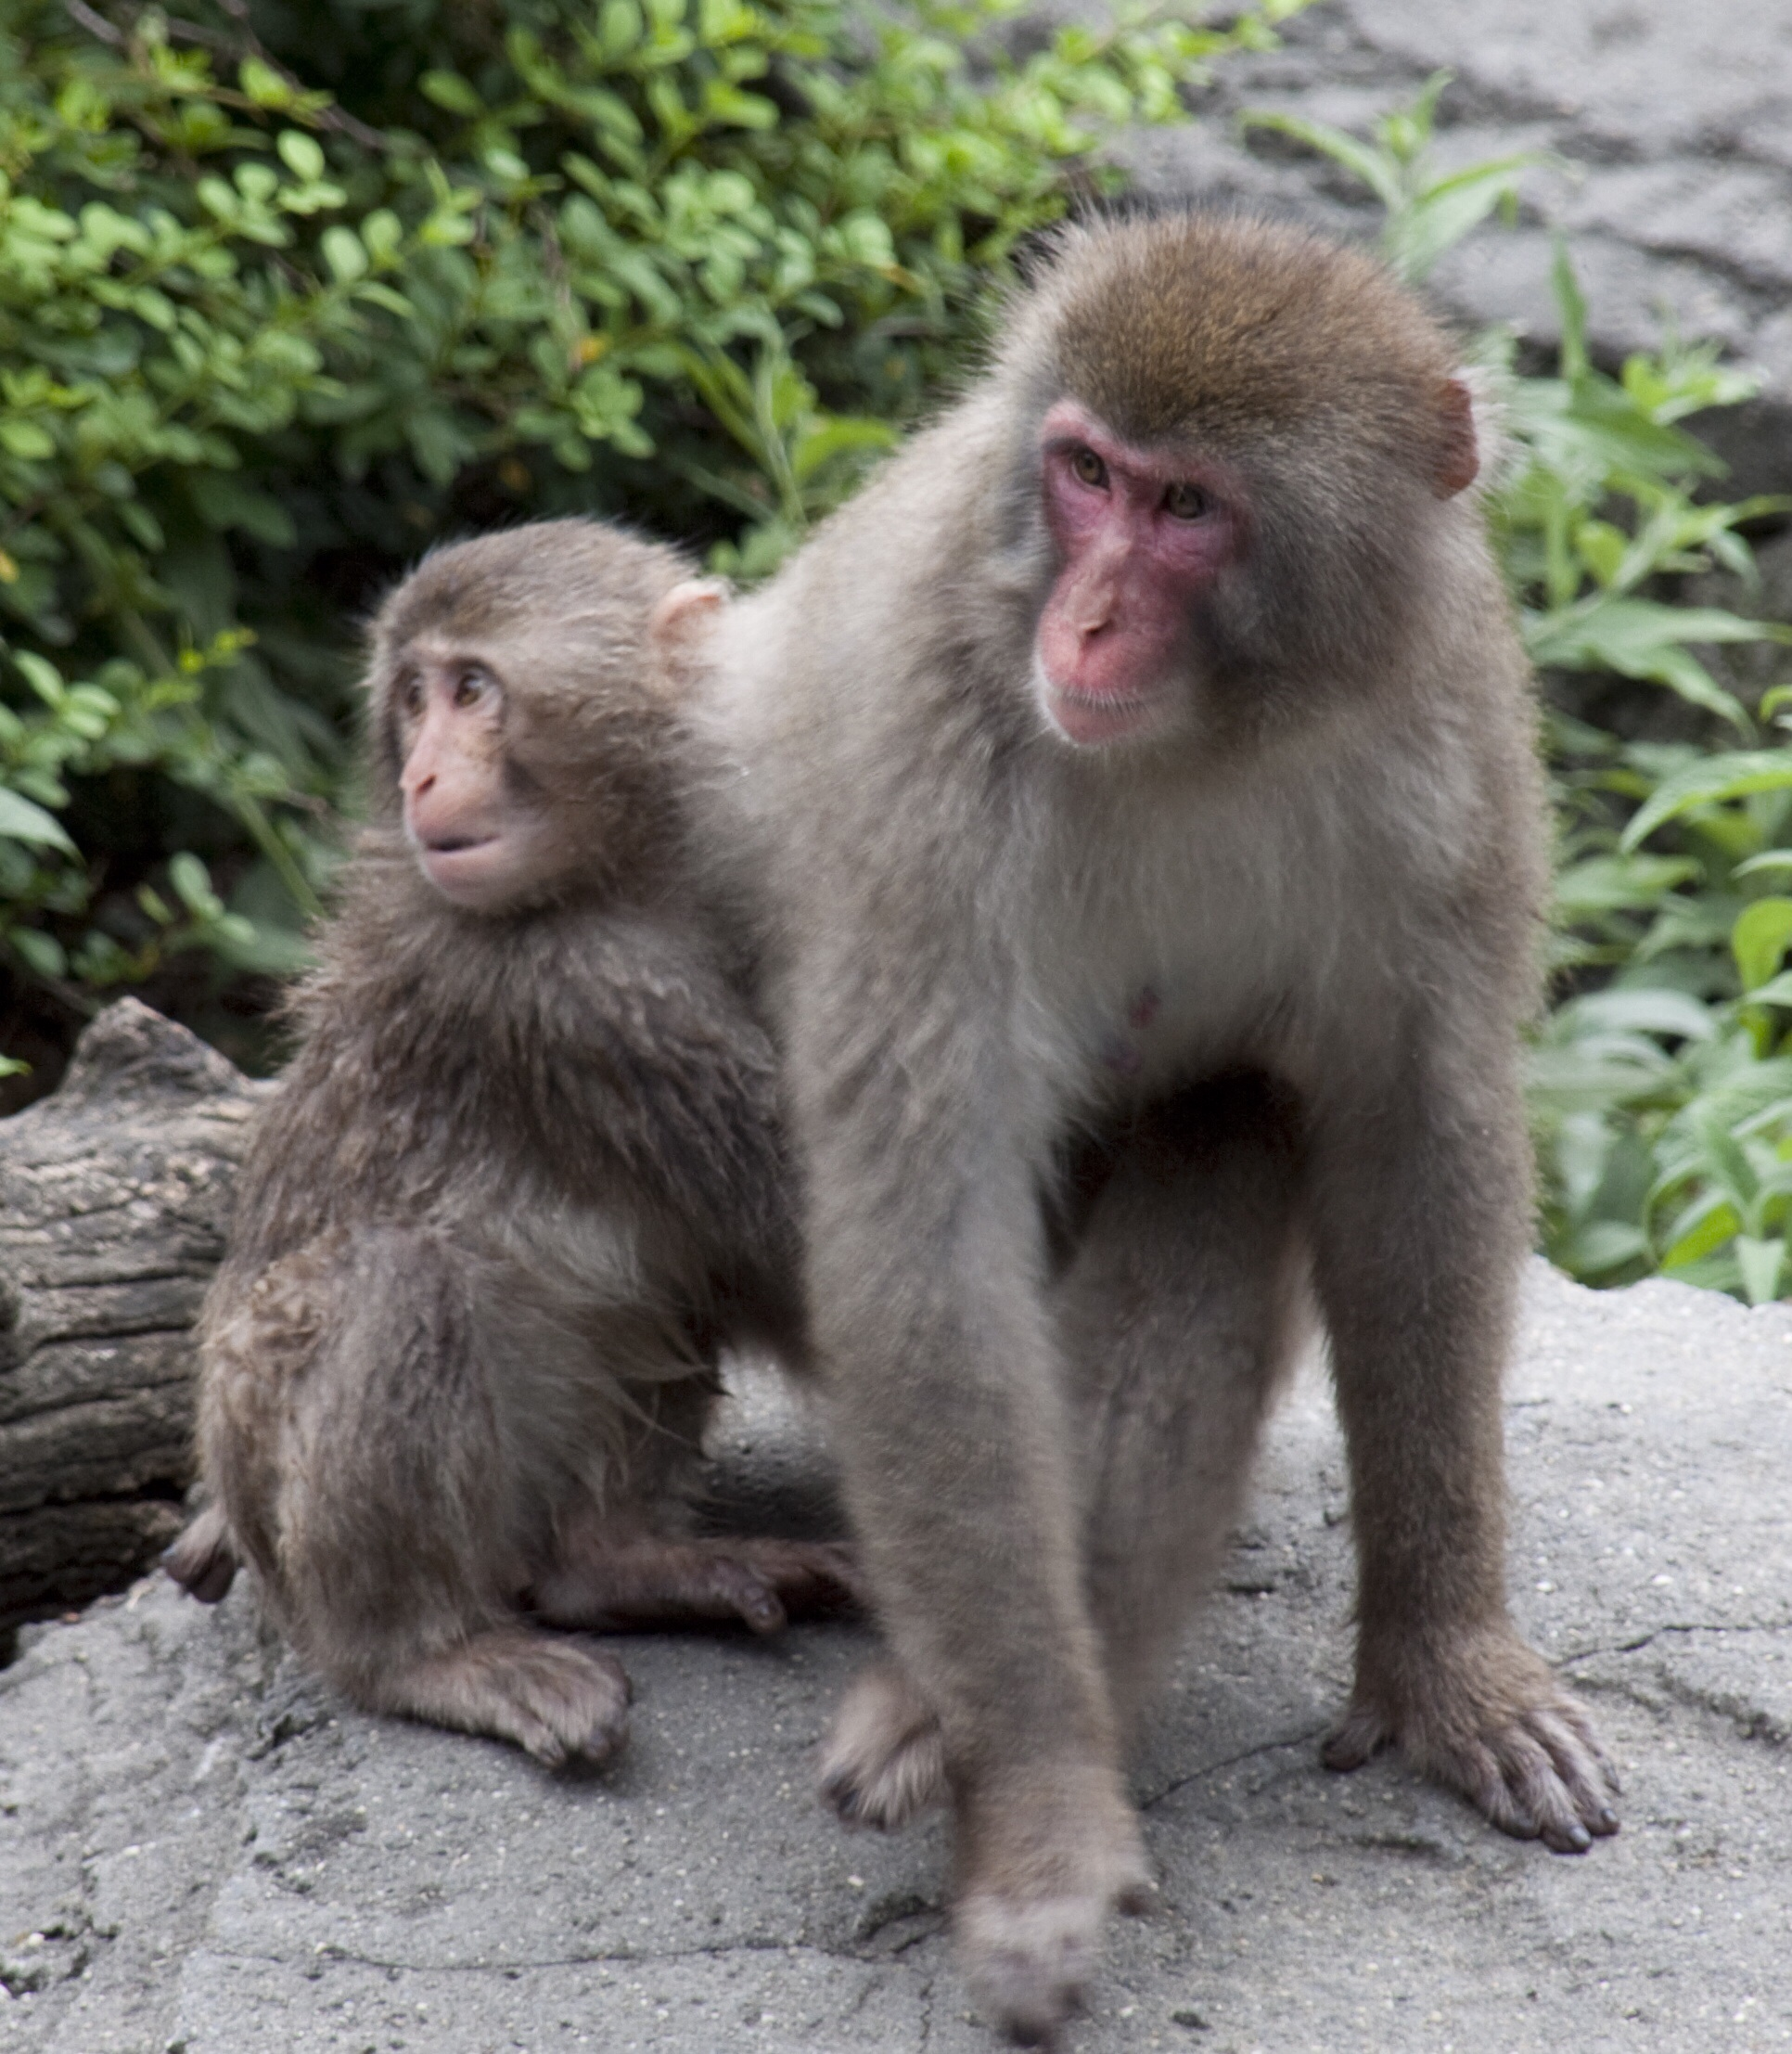 Monkey Stock Photos And Images - RF